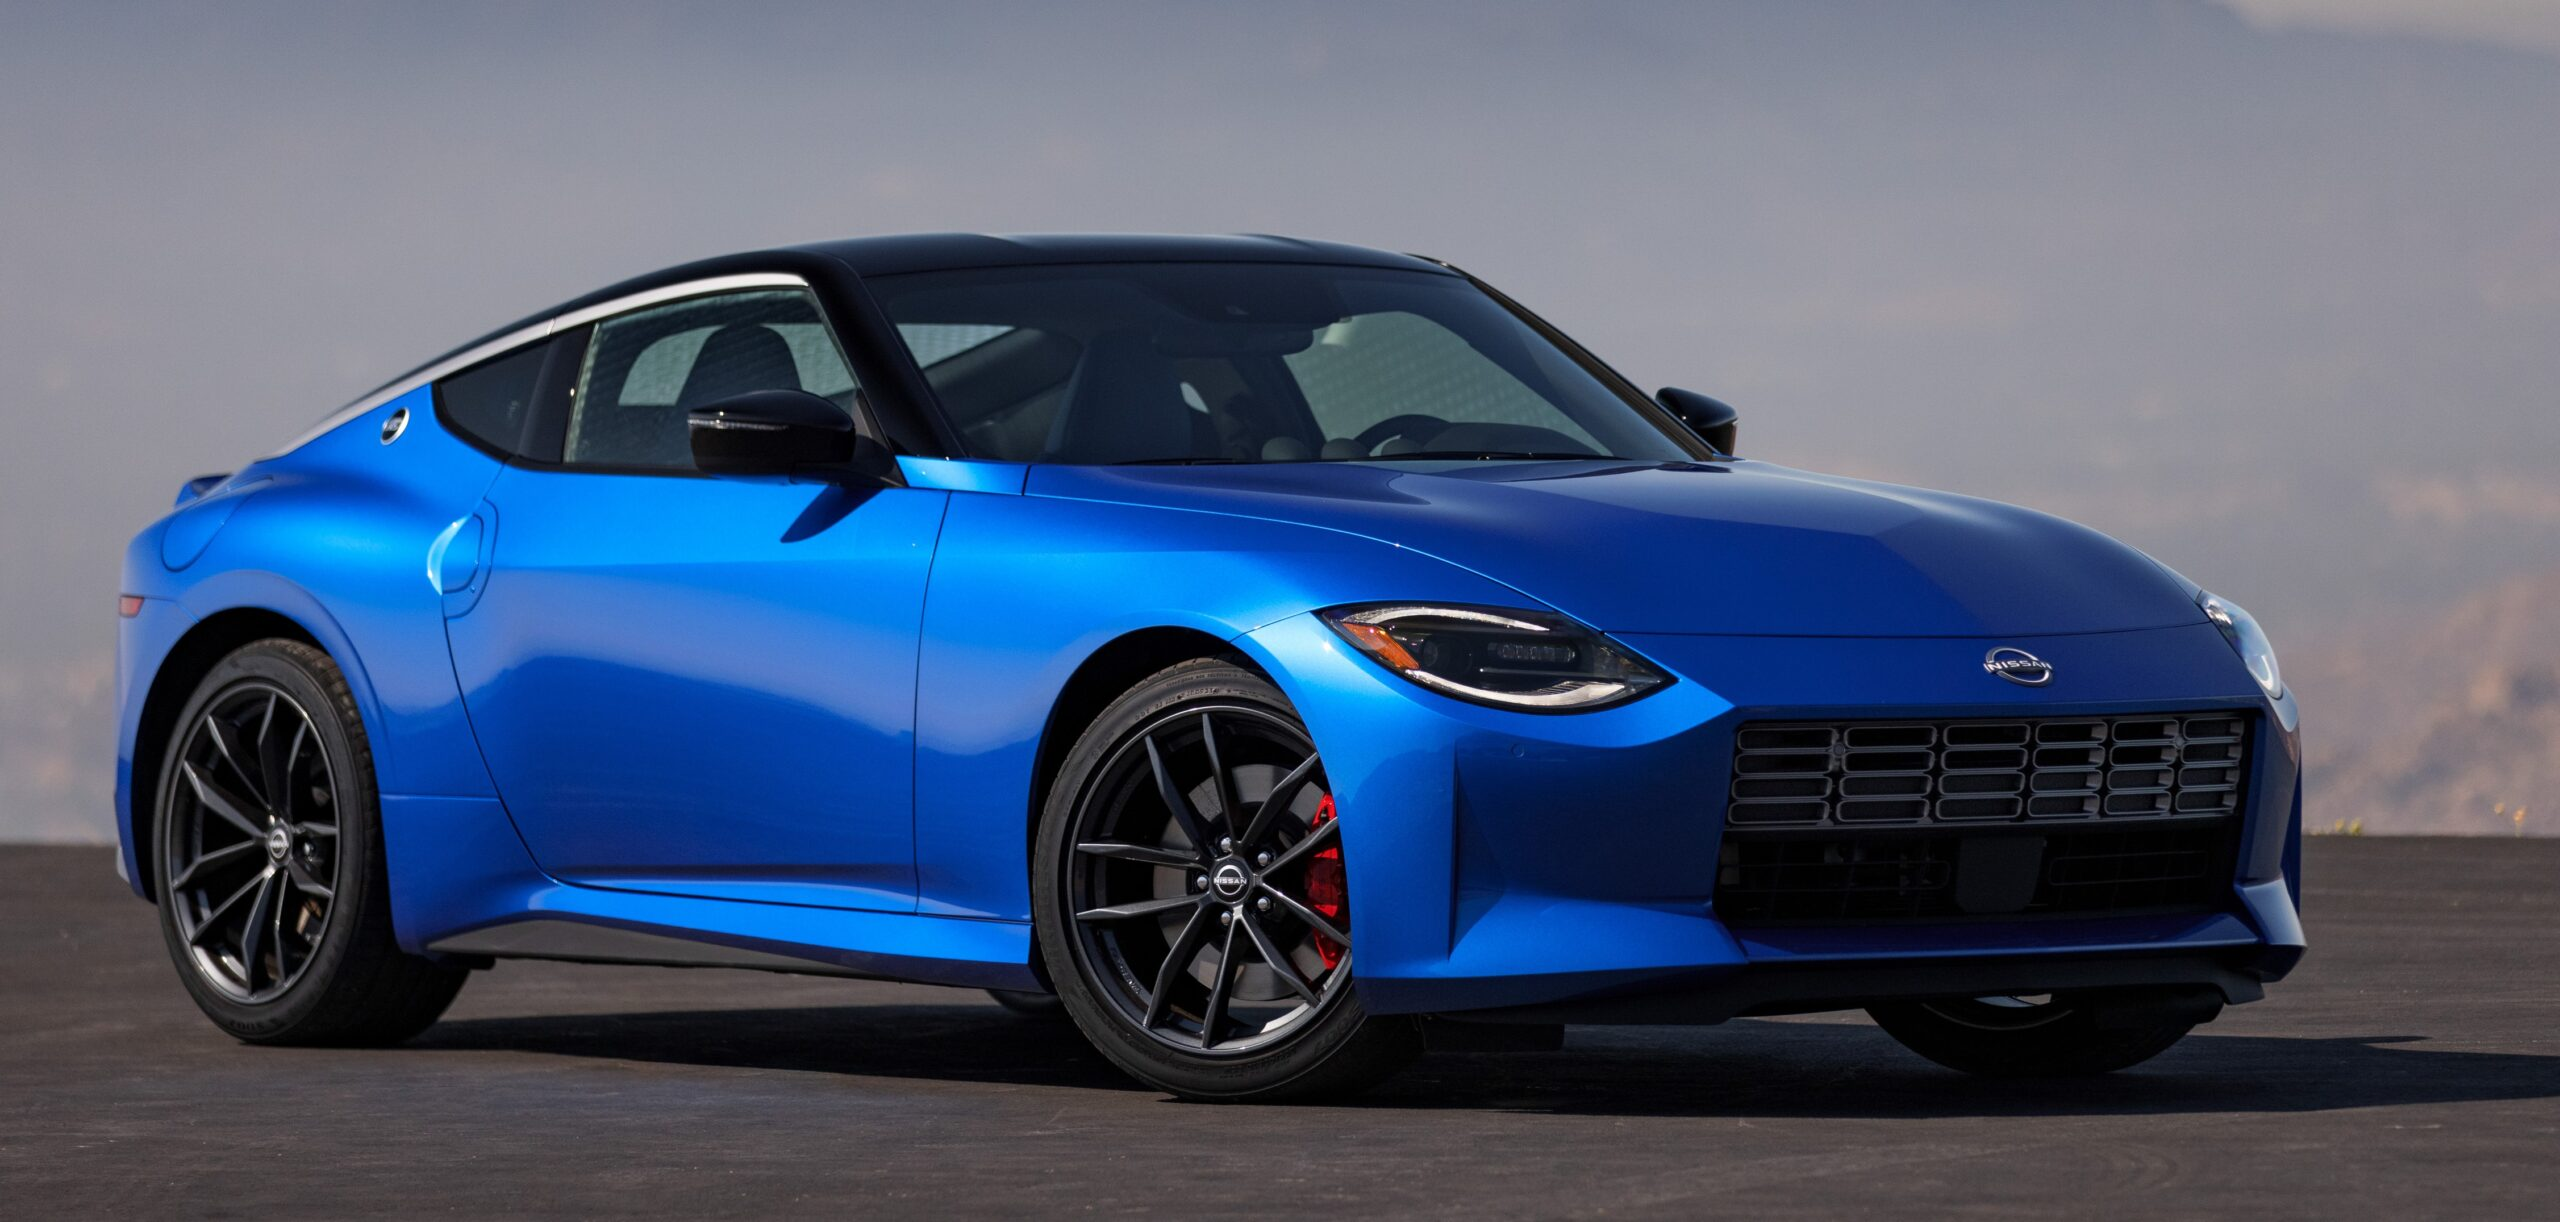 An exterior view of the 2023 Z